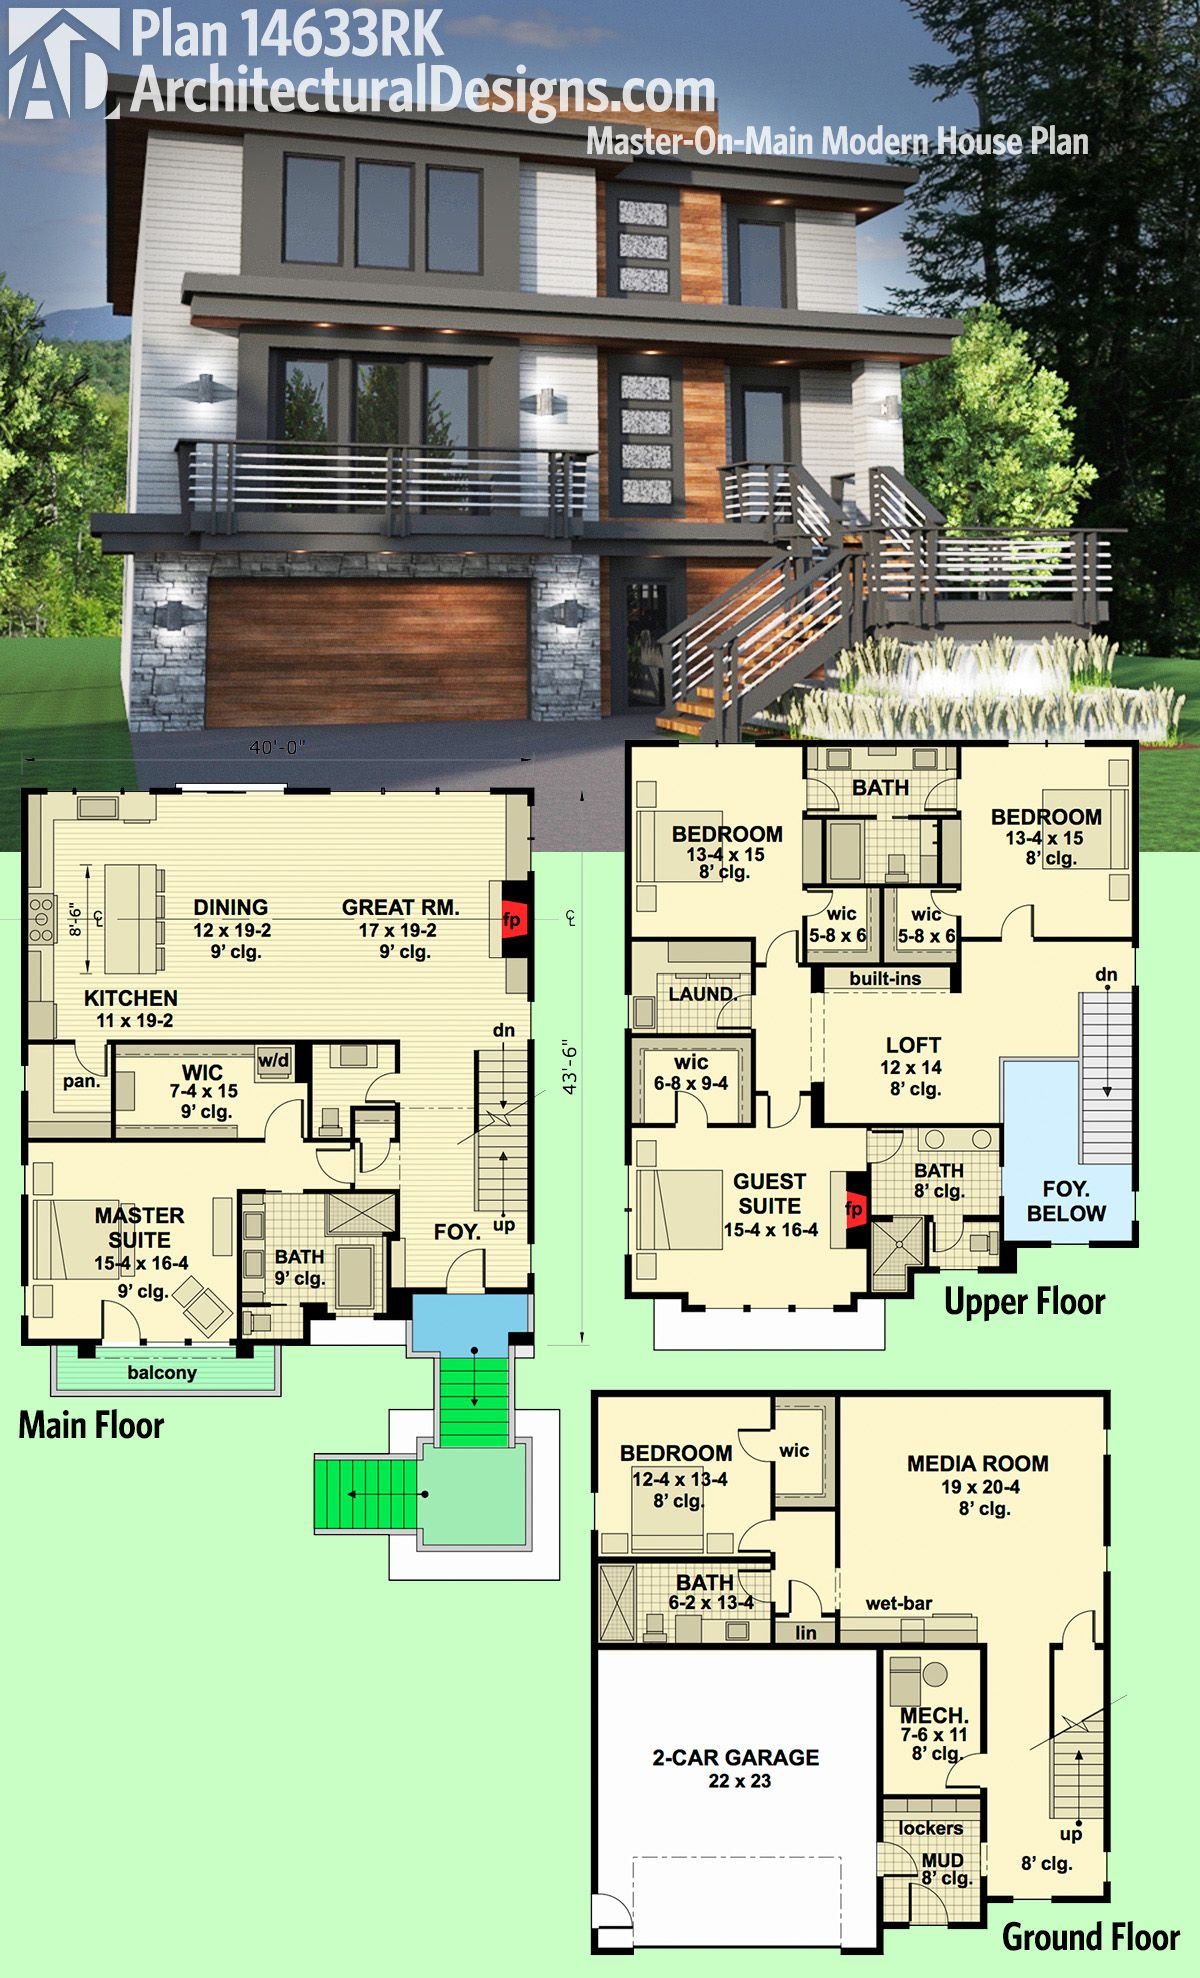 Plan 14633RK: Master-On-Main Modern House Plan | Pinterest | Modern ...